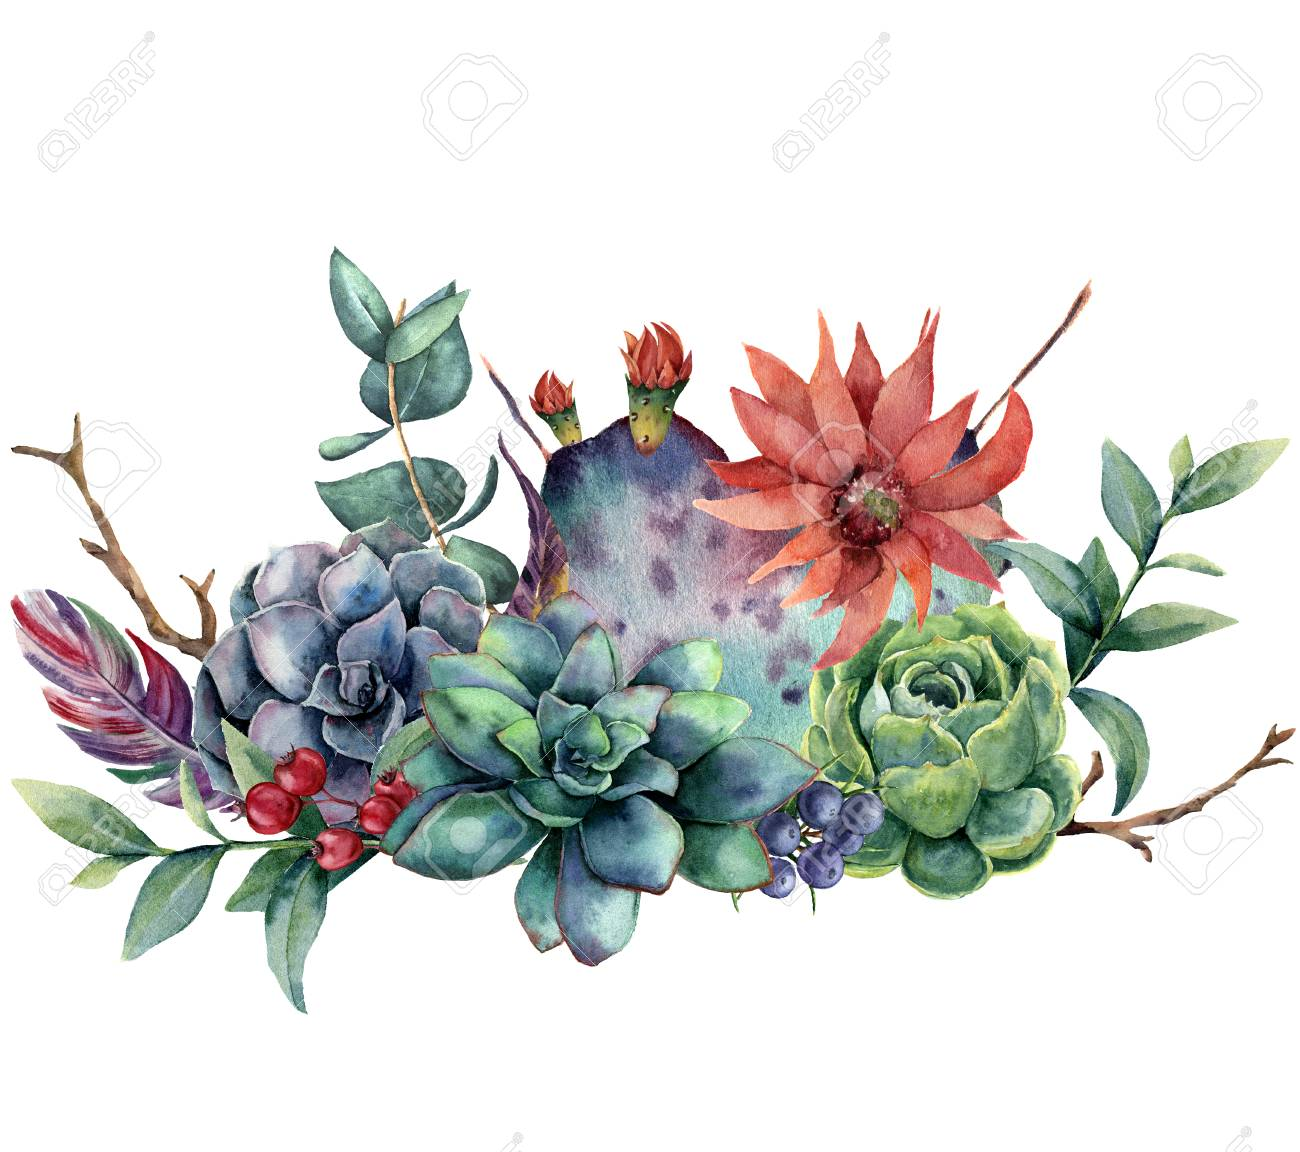 Watercolor Floral Bouquet With Cactus And Flower. Hand Painted ...